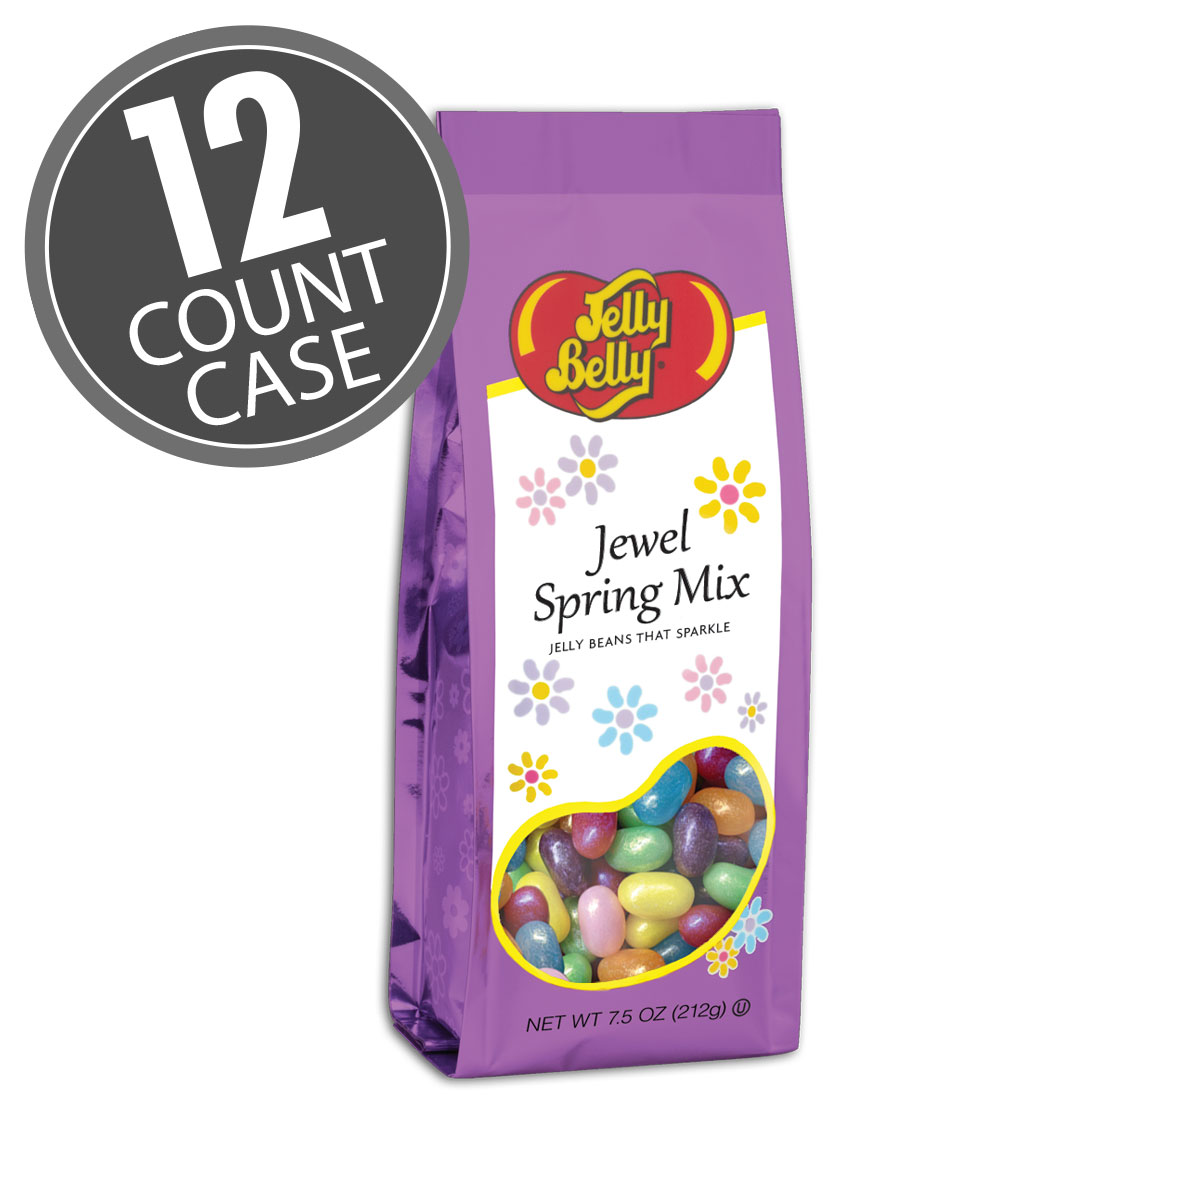 Jewel Spring Mix Jelly Bean  - 7.5 oz Gift Bag - 12 Count Case